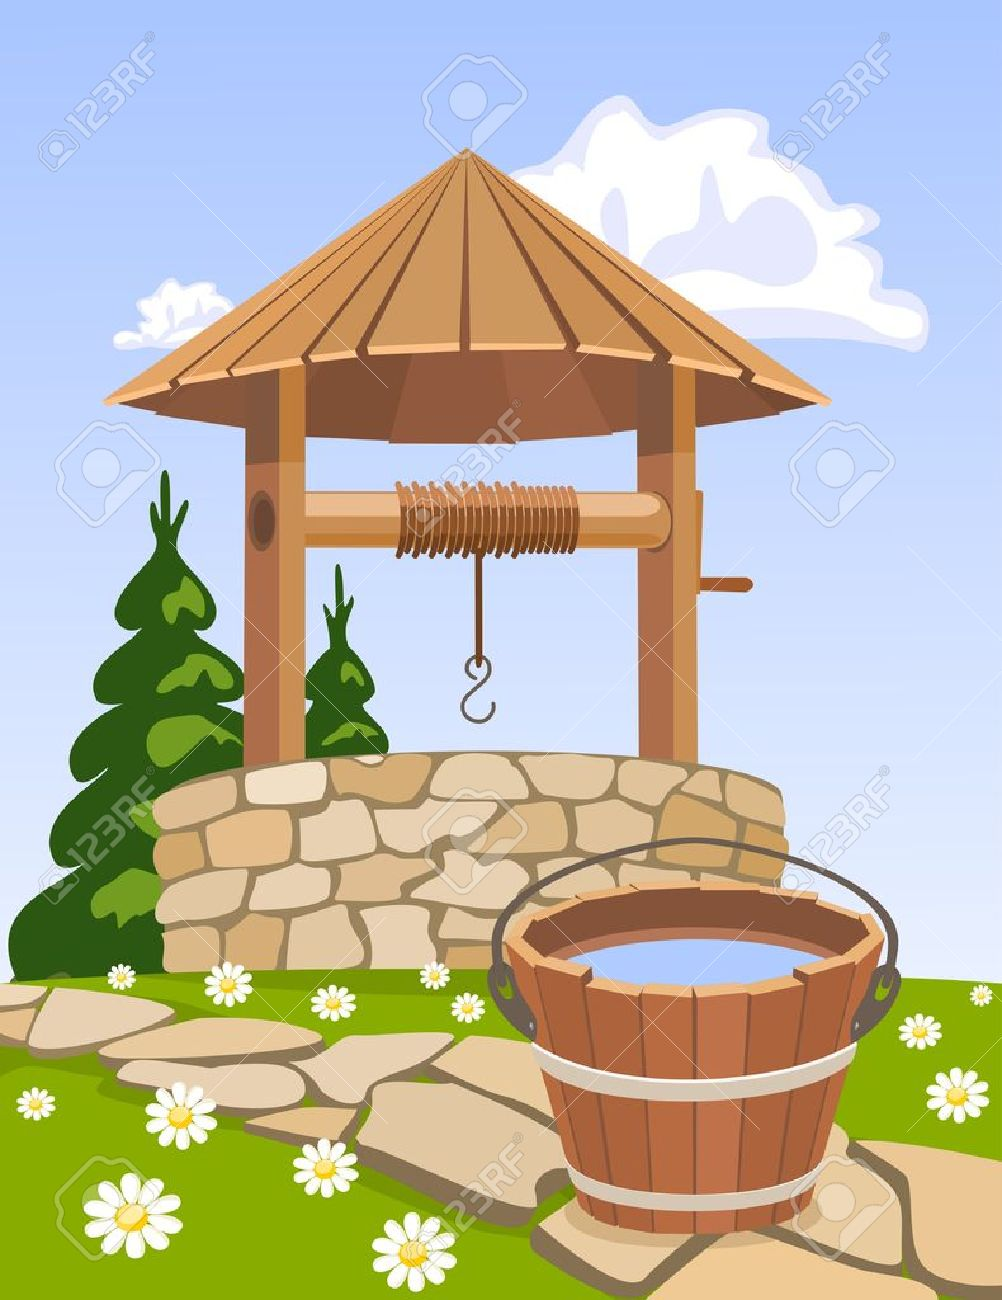 Old Wooden Well And Bucket Of Water Royalty Free Cliparts, Vectors.